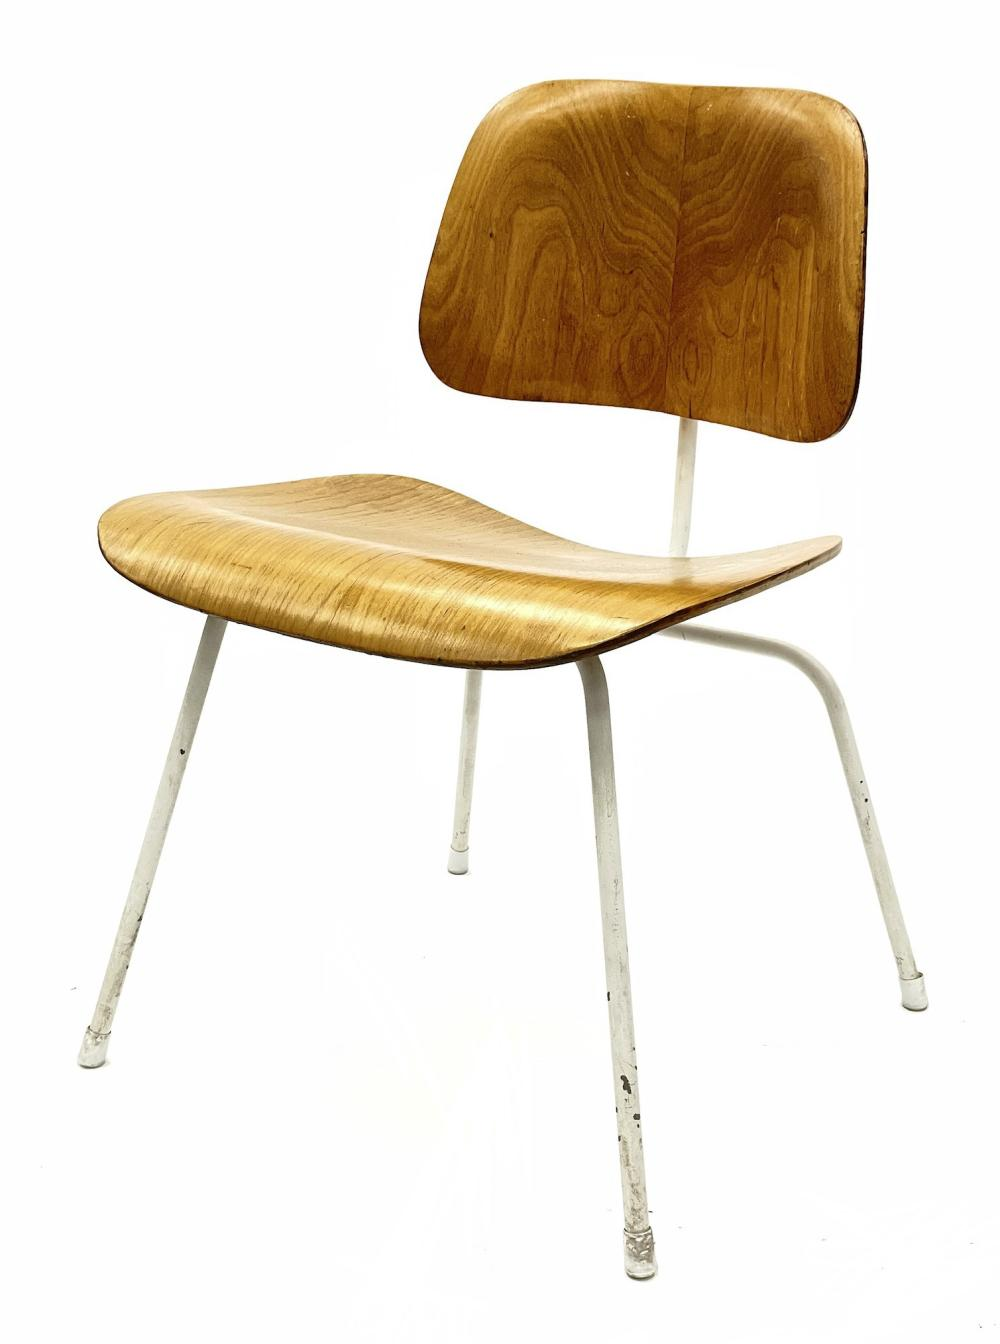 EARLY 1ST GENERATION CHARLES EAMES FOR EVANS SOLD BY HERMAN MILLER MOLDED PLYWOOD DCM CHAIR